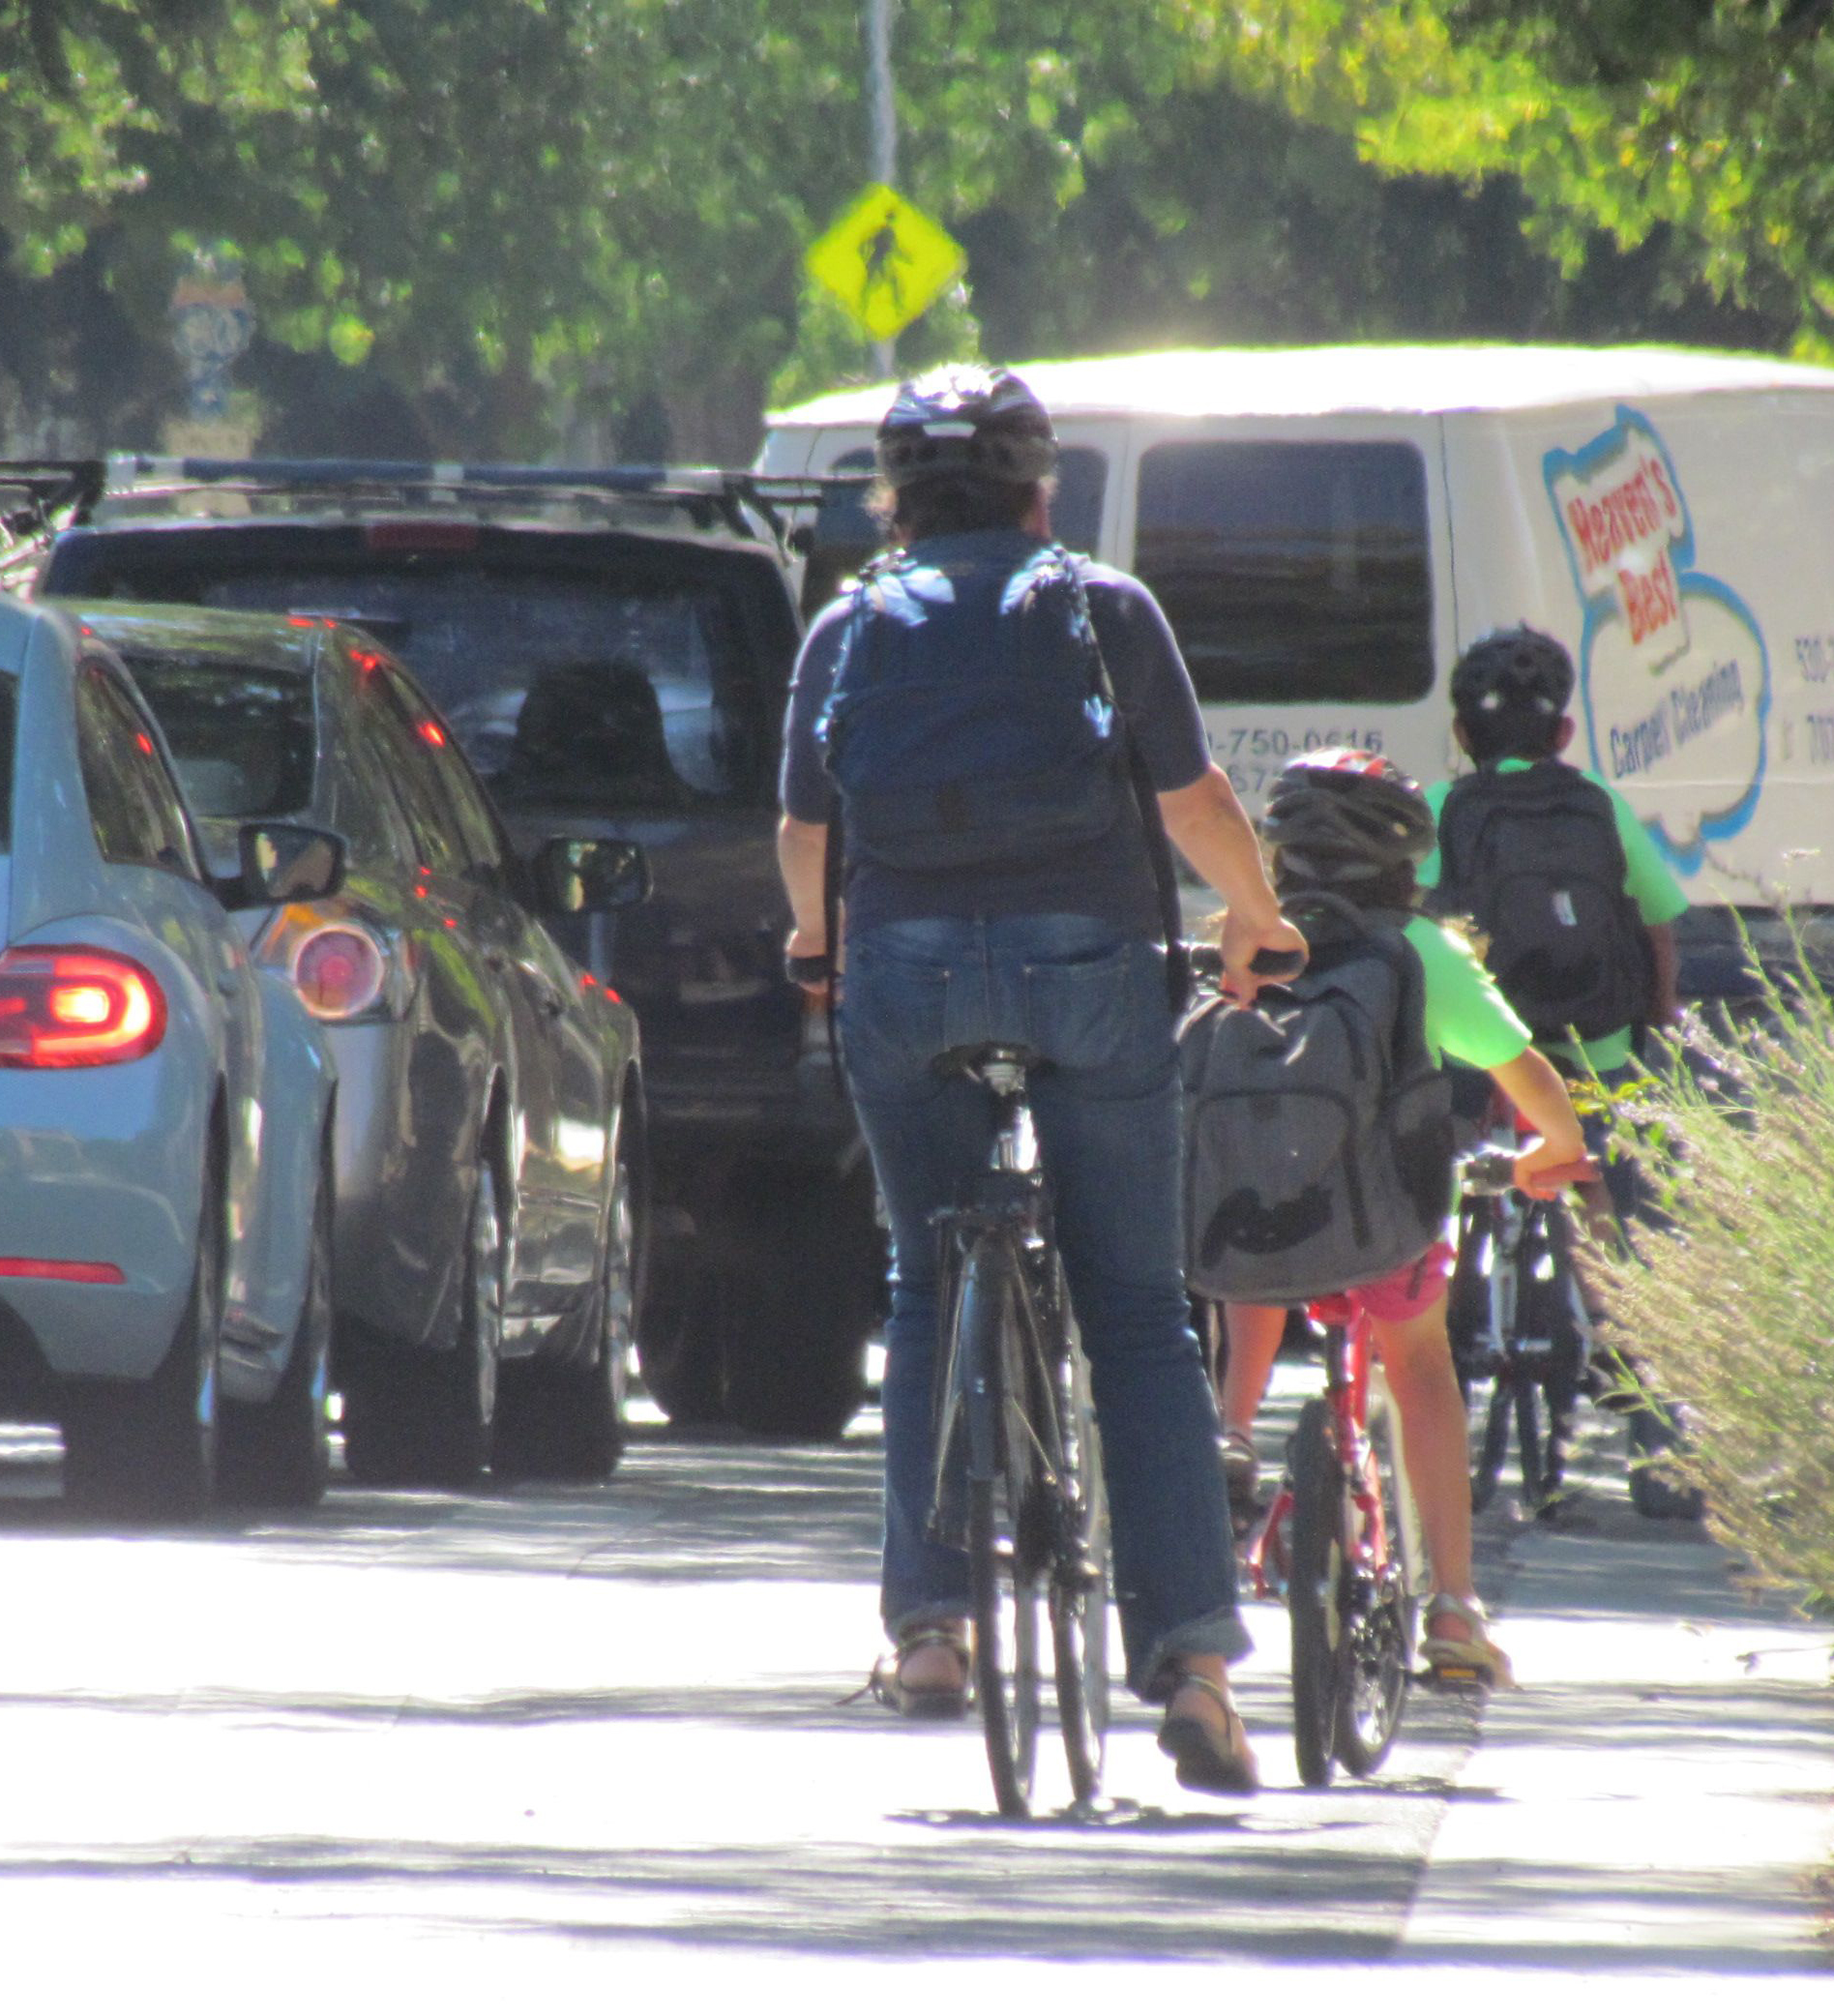 If we want people to drive less and use active modes more, we need to make sure our transportation funding plans reflect that. Photo: Melanie Curry/Streetsblog